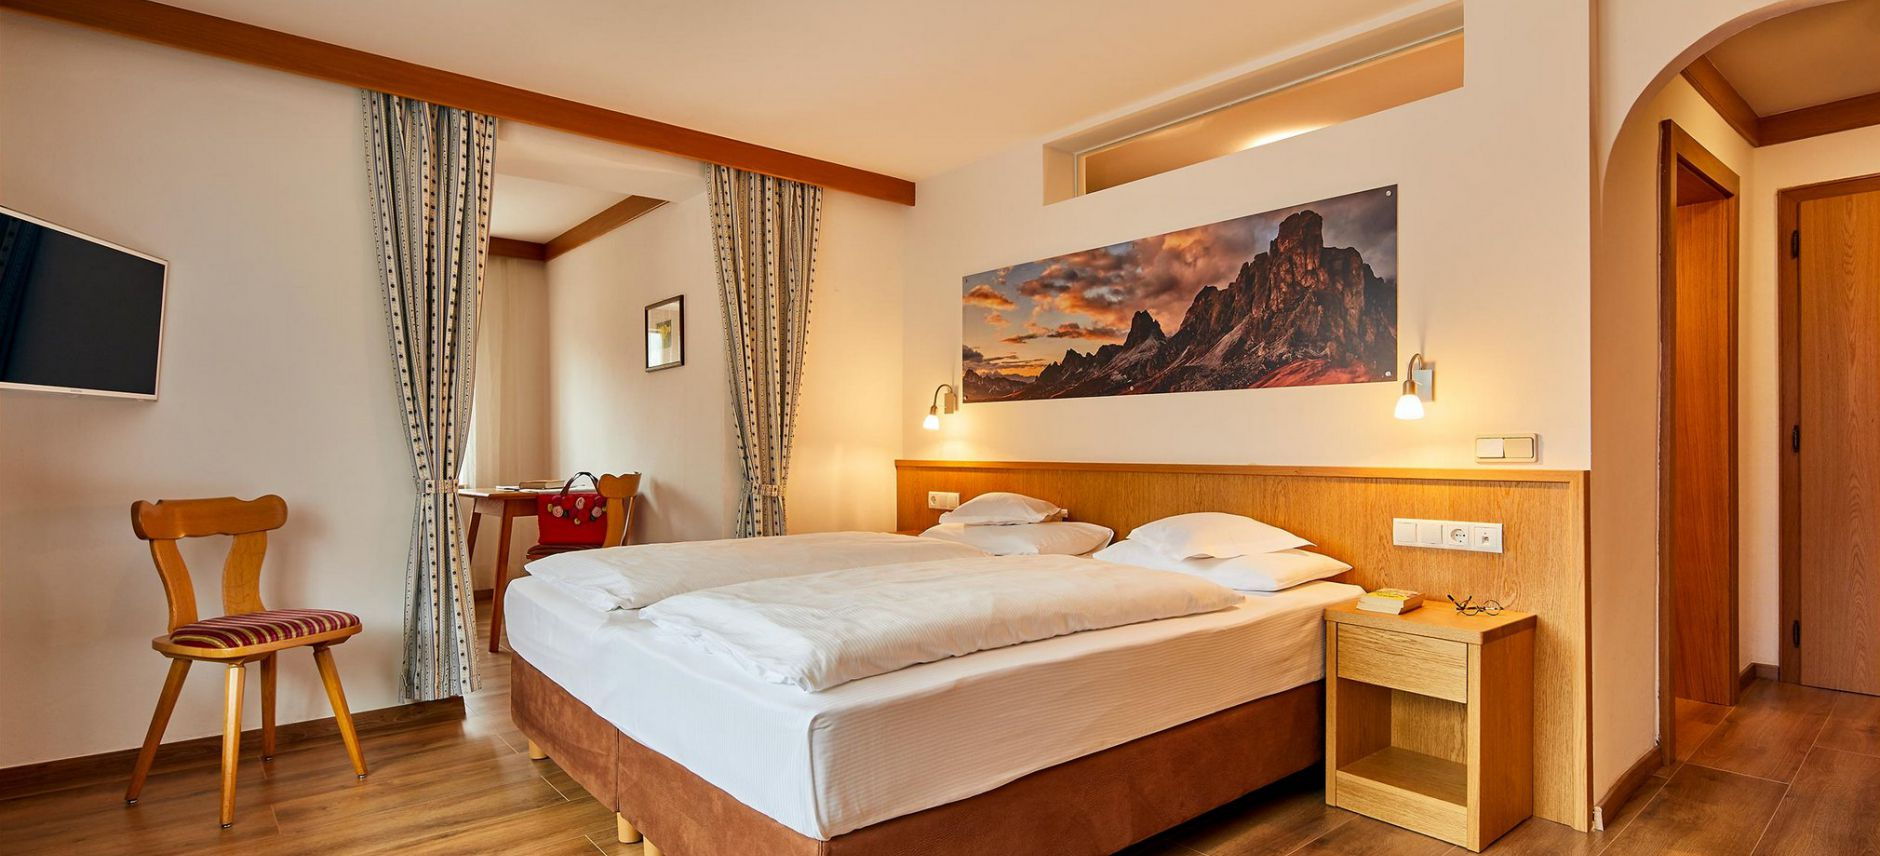 Image: Rooms at Hotel Veneranda in Alta Badia